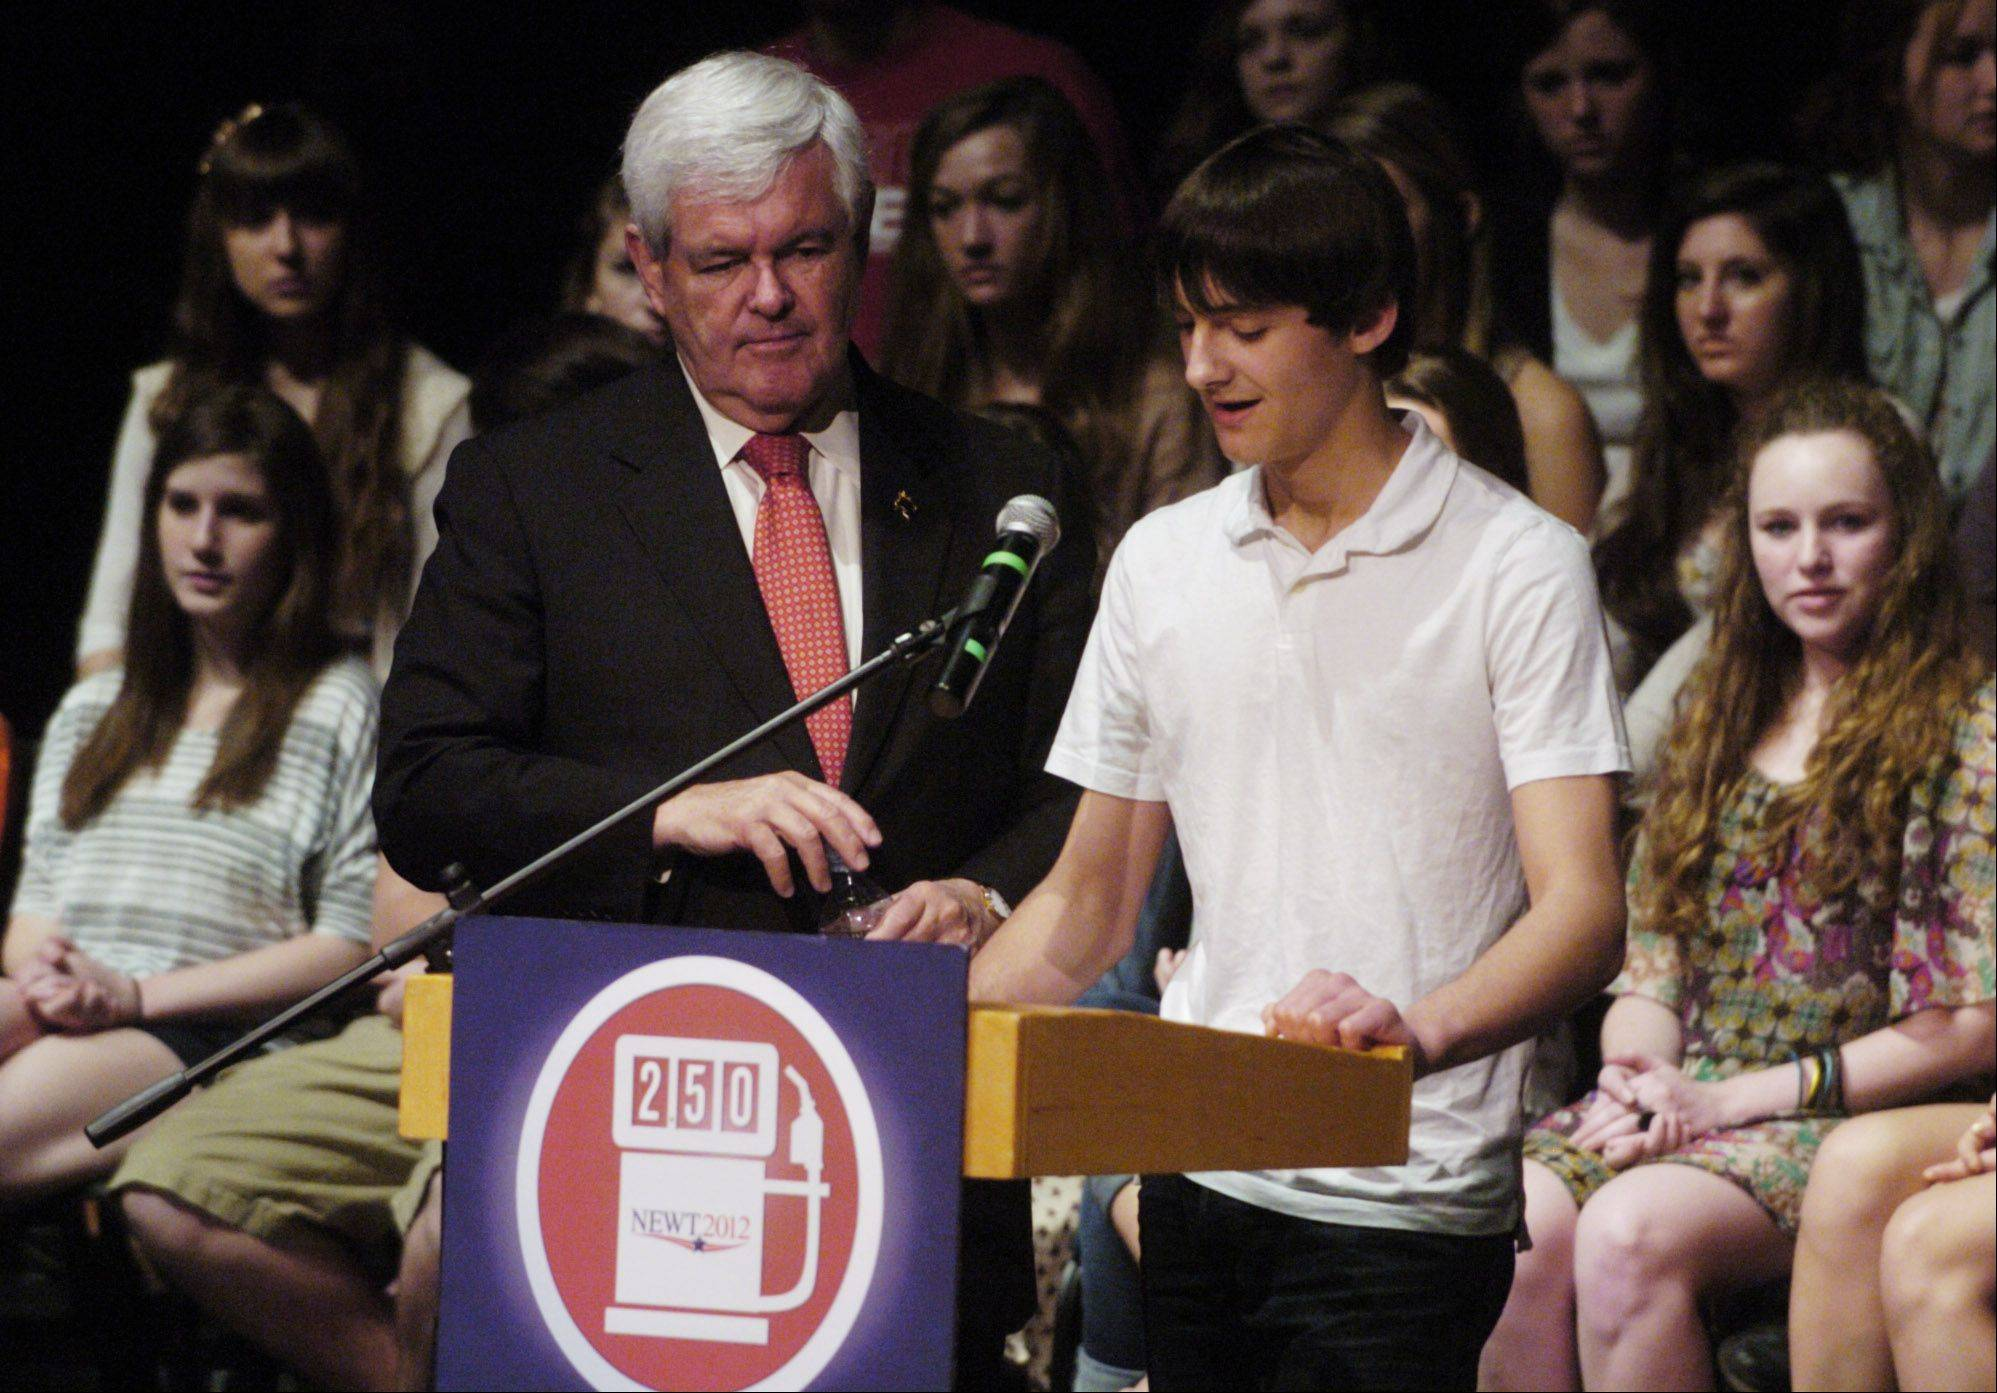 Images: Newt Gingrich in the suburbs on Thursday